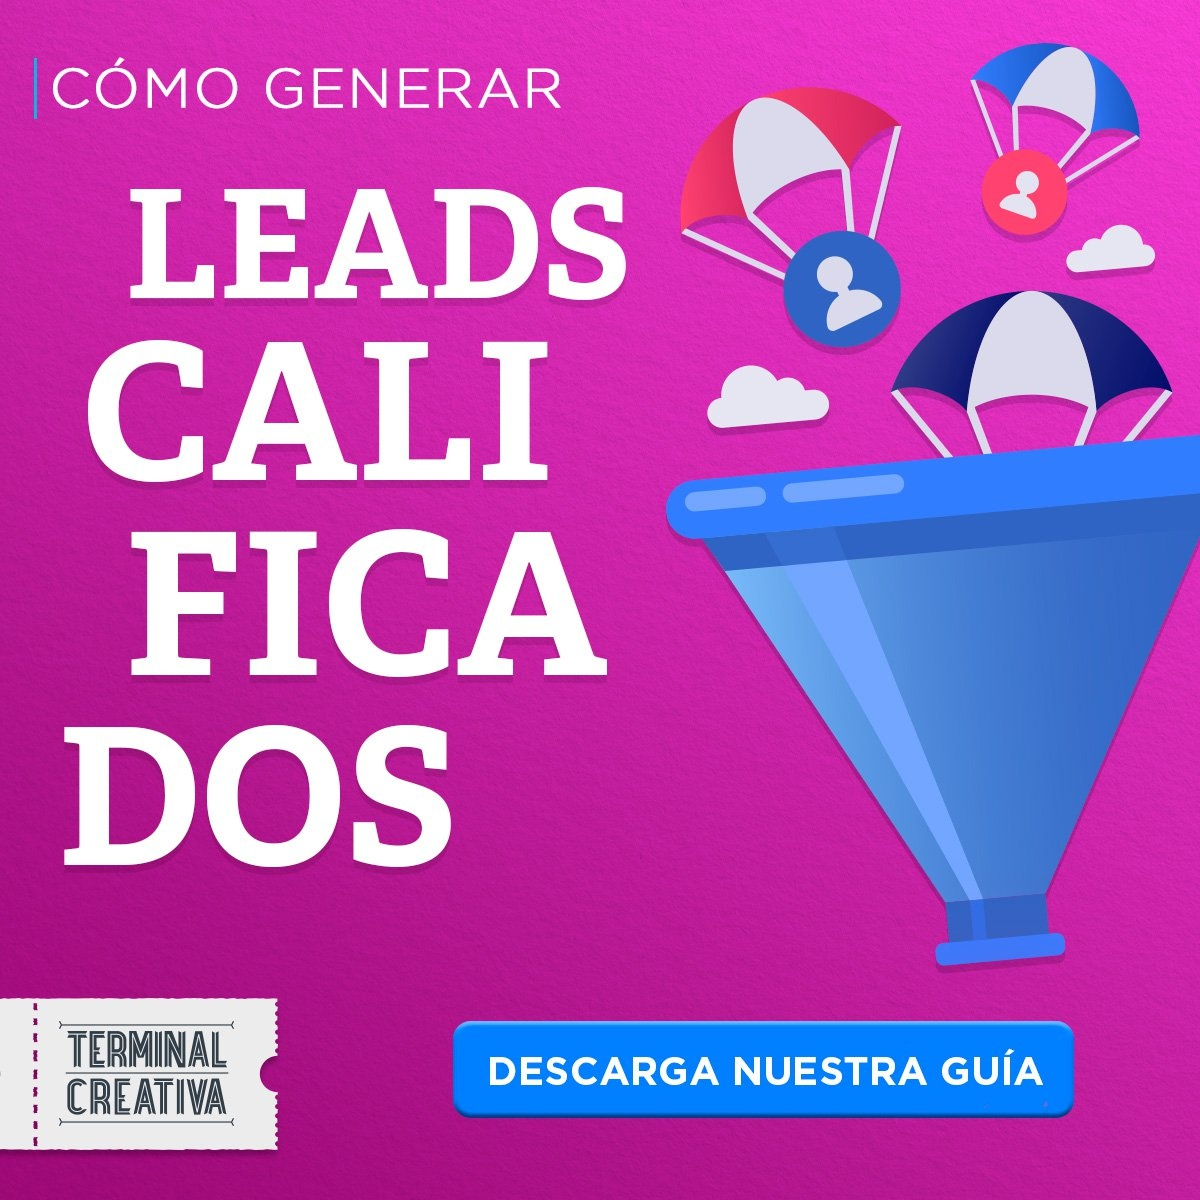 Leads calificados